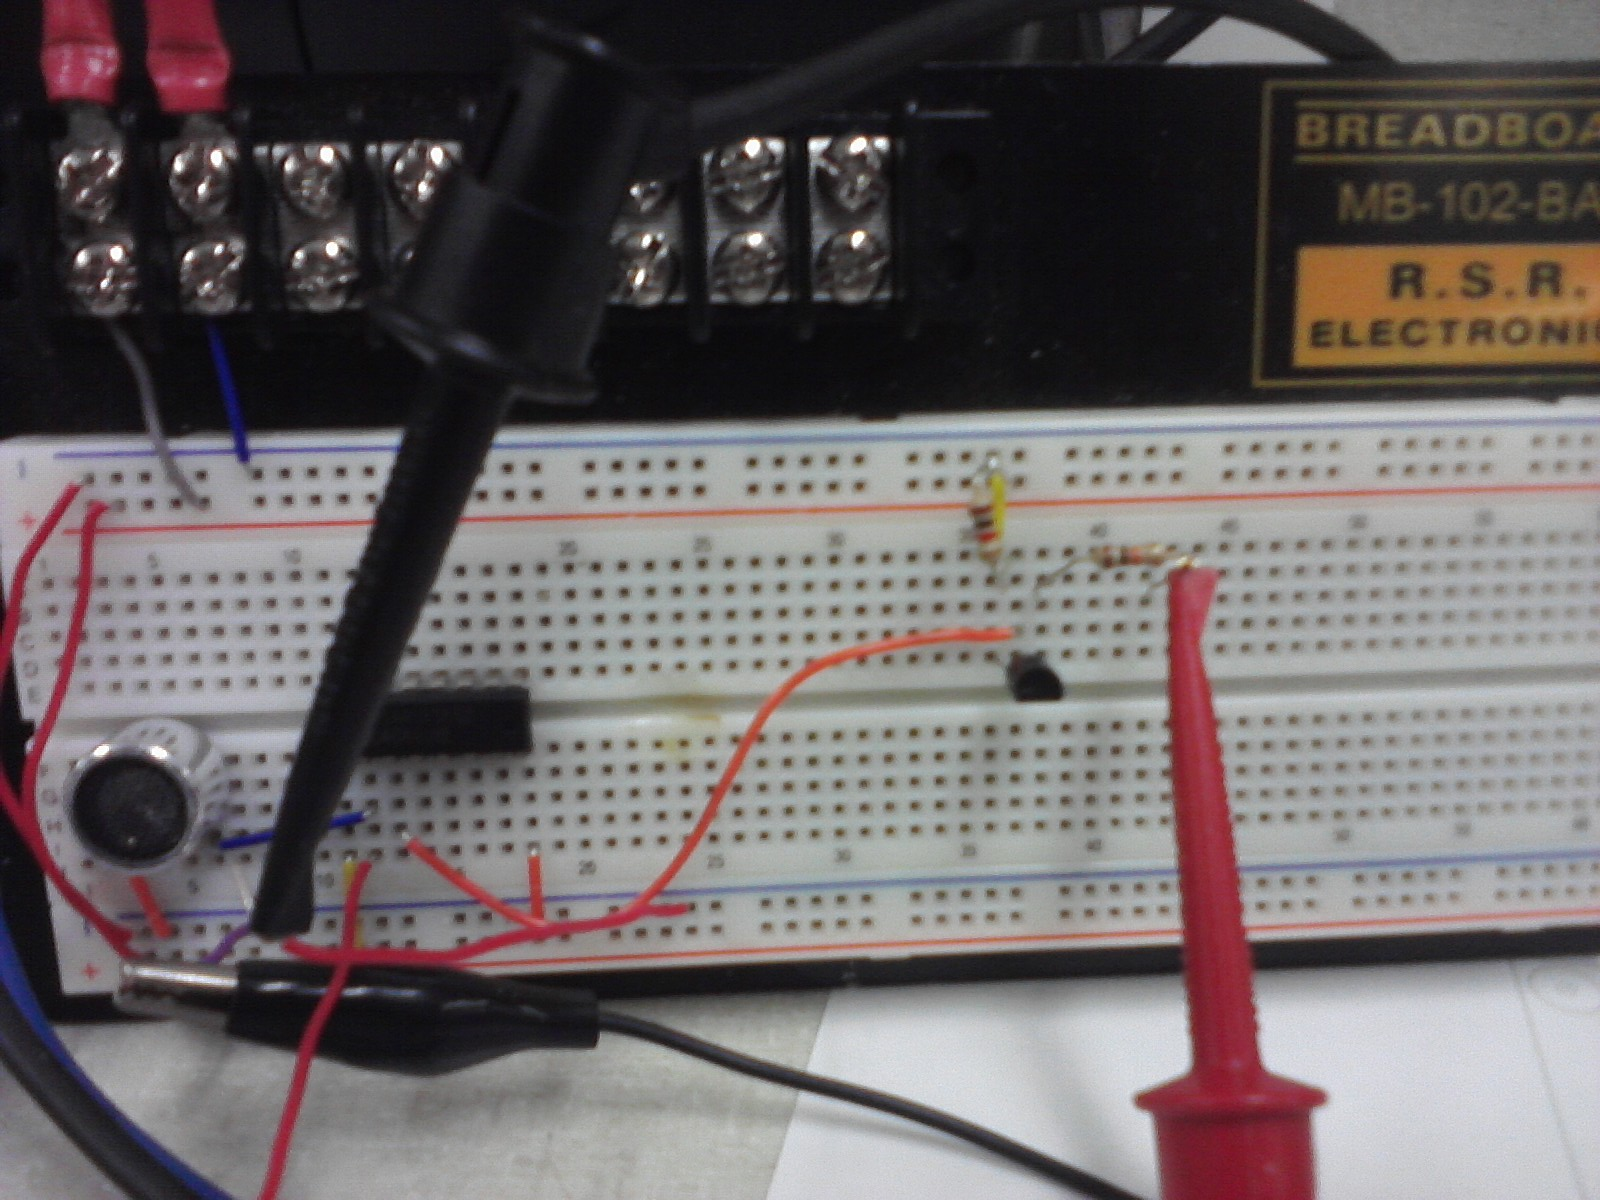 Brendon Mccools Lab Notebook The Breadboard Circuit Of Above Is Shown Below V08 Beacon Board Reflects This Change From Op Amp Based To New Also